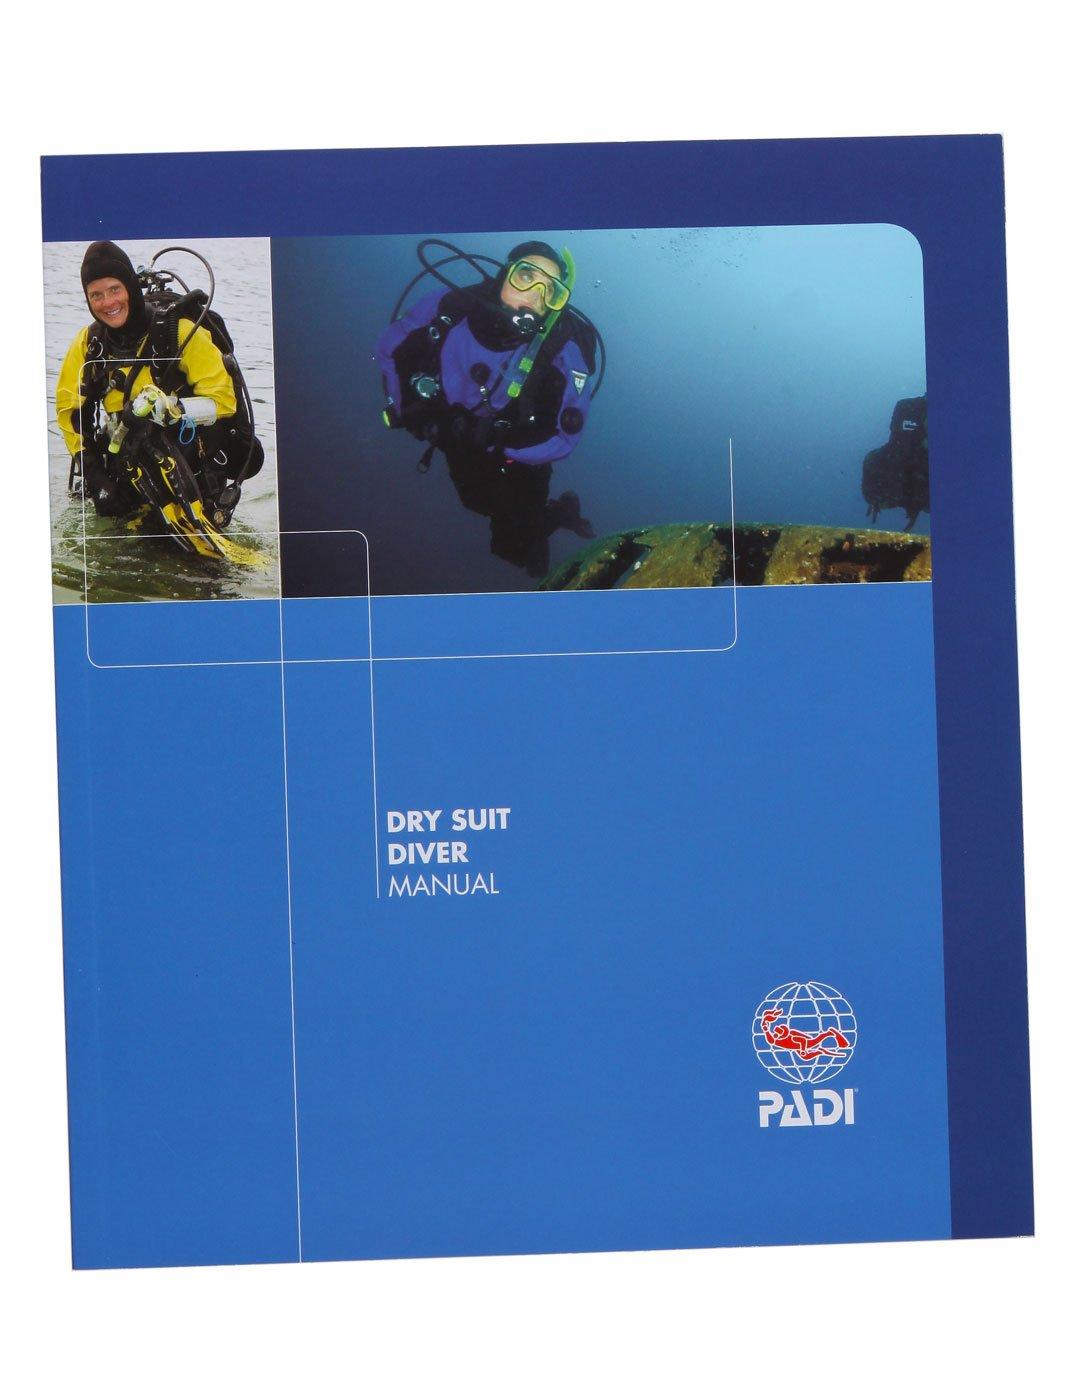 Image of PADI Dry Suit Diver Manual